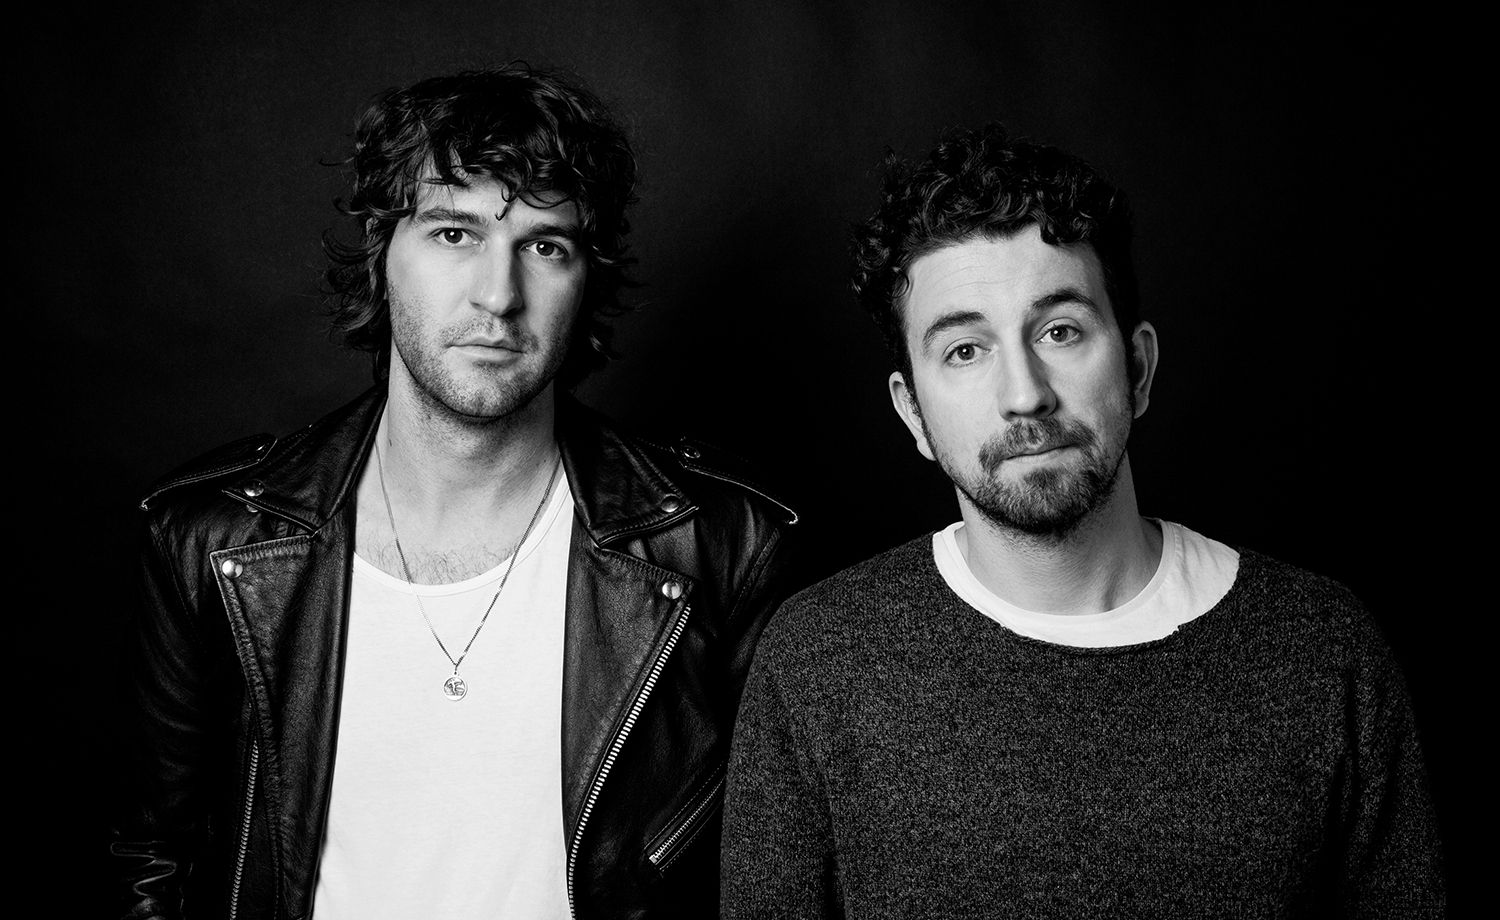 REVIEW: Japandroids masterfully explore love and life on new LP